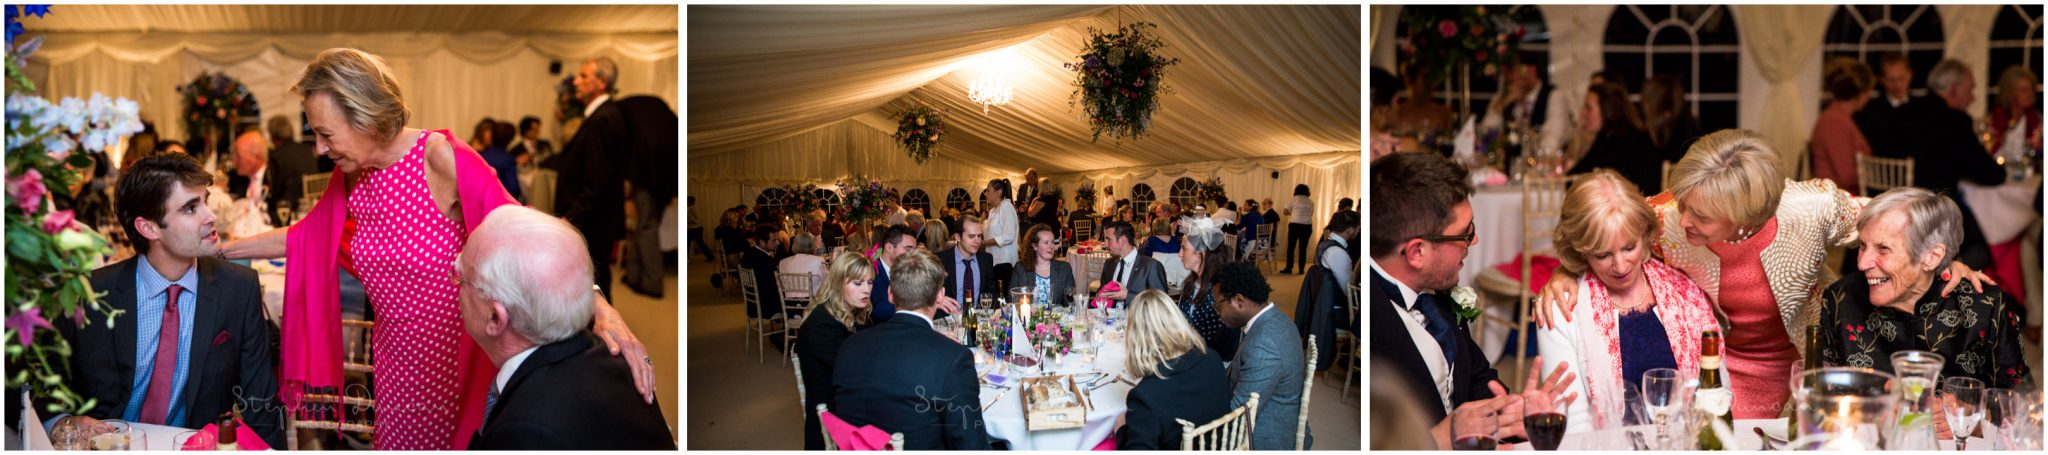 Lymington wedding photography marquee